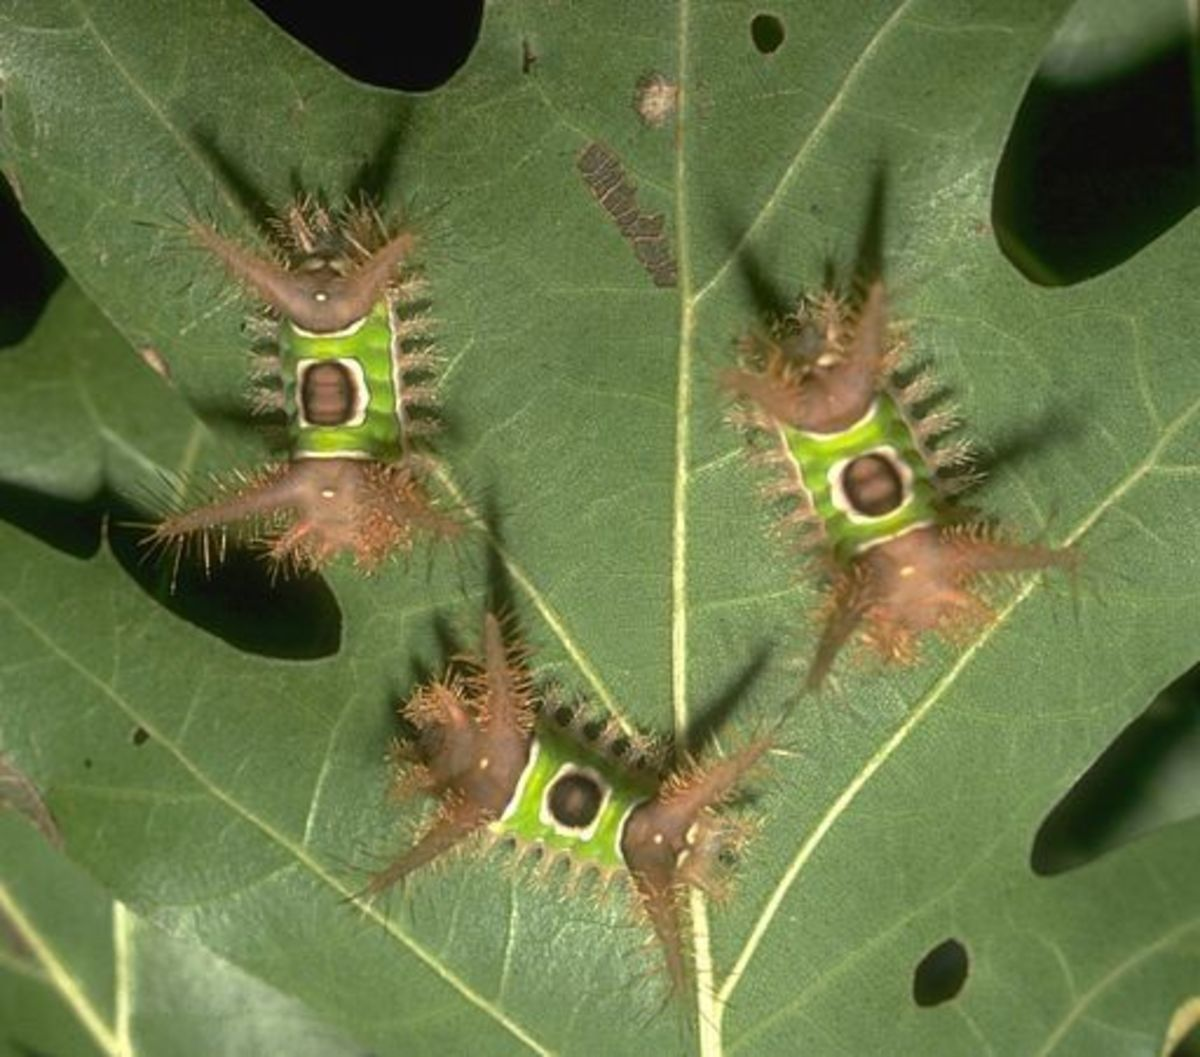 Immature saddleback caterpillars tend to feed in groups, while older caterpillars feed singly.